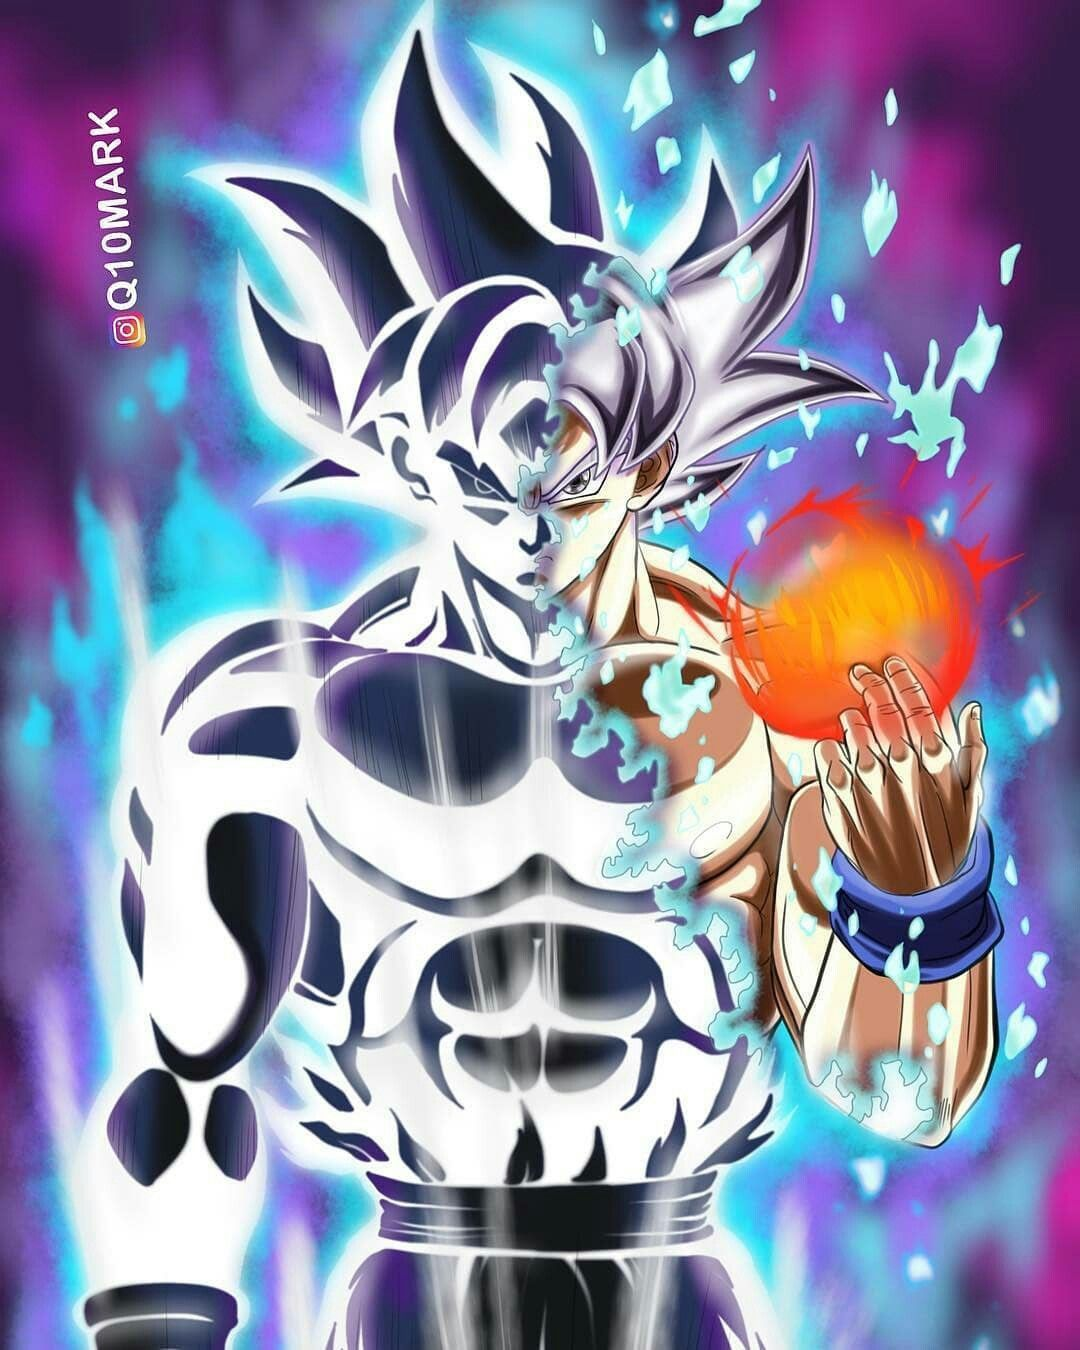 Ultra Instinct Dragon Ball Super Wallpaper: Goku Mastered Ultra Instinct By AdeBa3388deviantartcom On